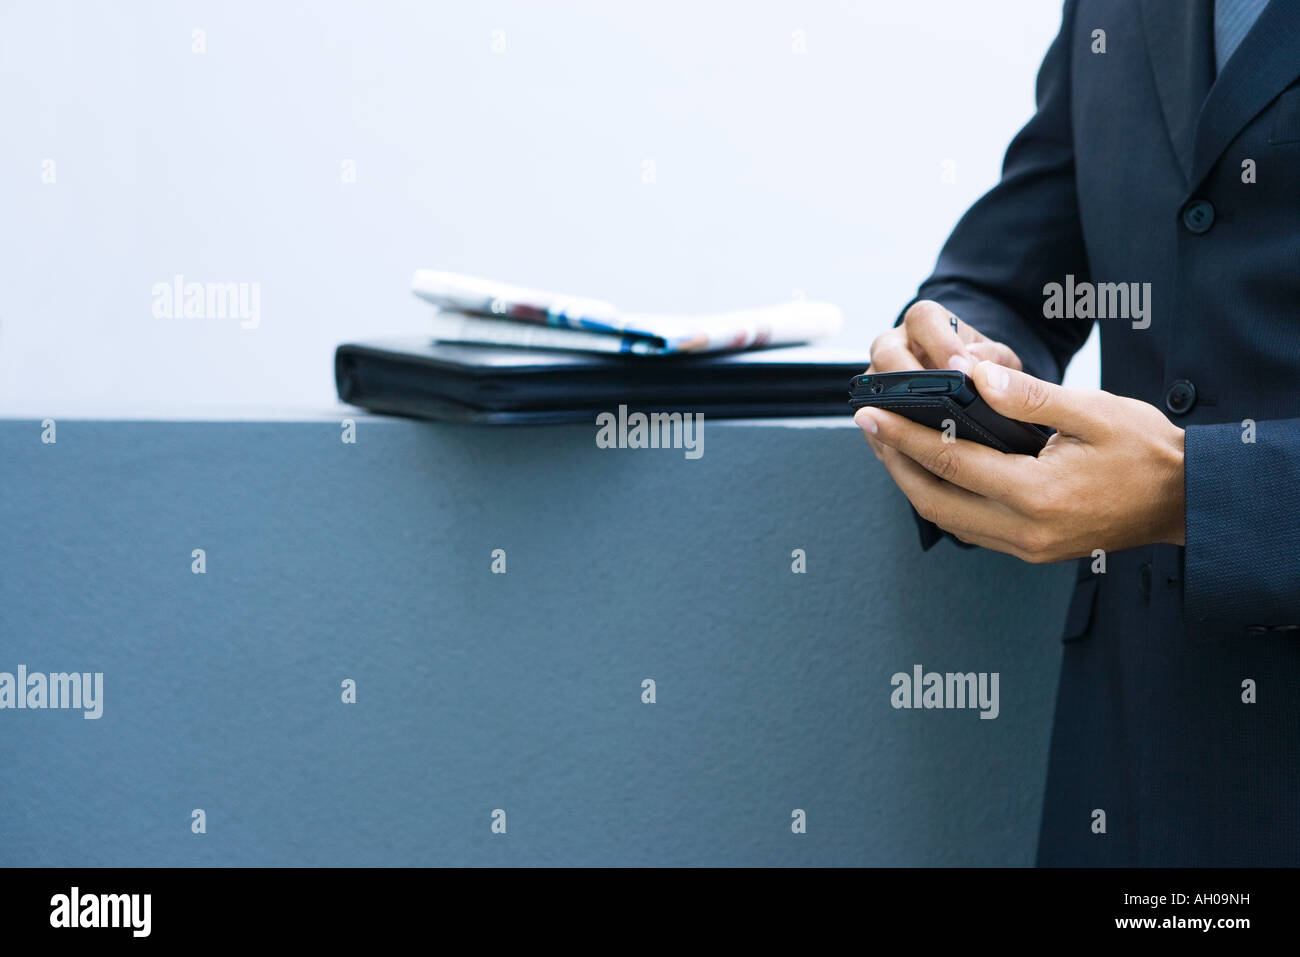 Businessman using palmtop, side view, cropped view of hands - Stock Image